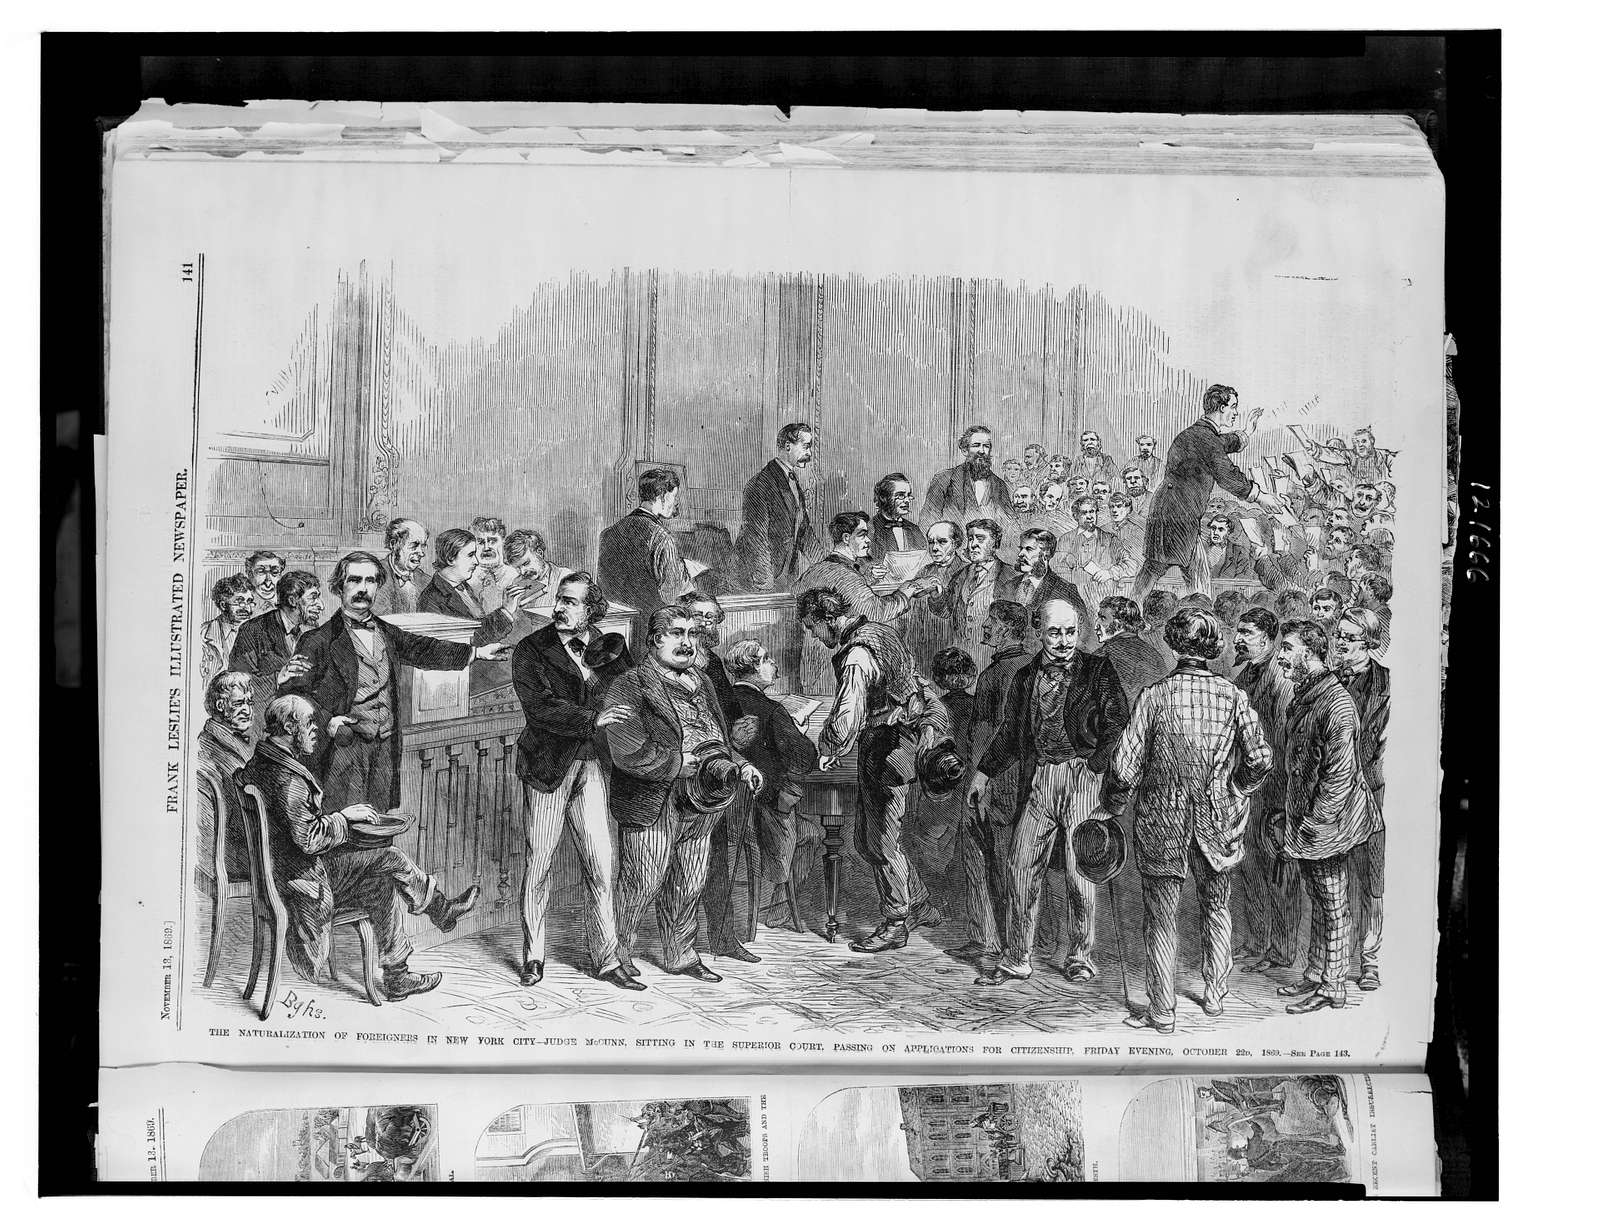 The naturalization of foreigners in New York City - Judge McCunn sitting in the Superior Court, passing on applications for citizenship, Friday evening, October 22, 1869 / BGHS.